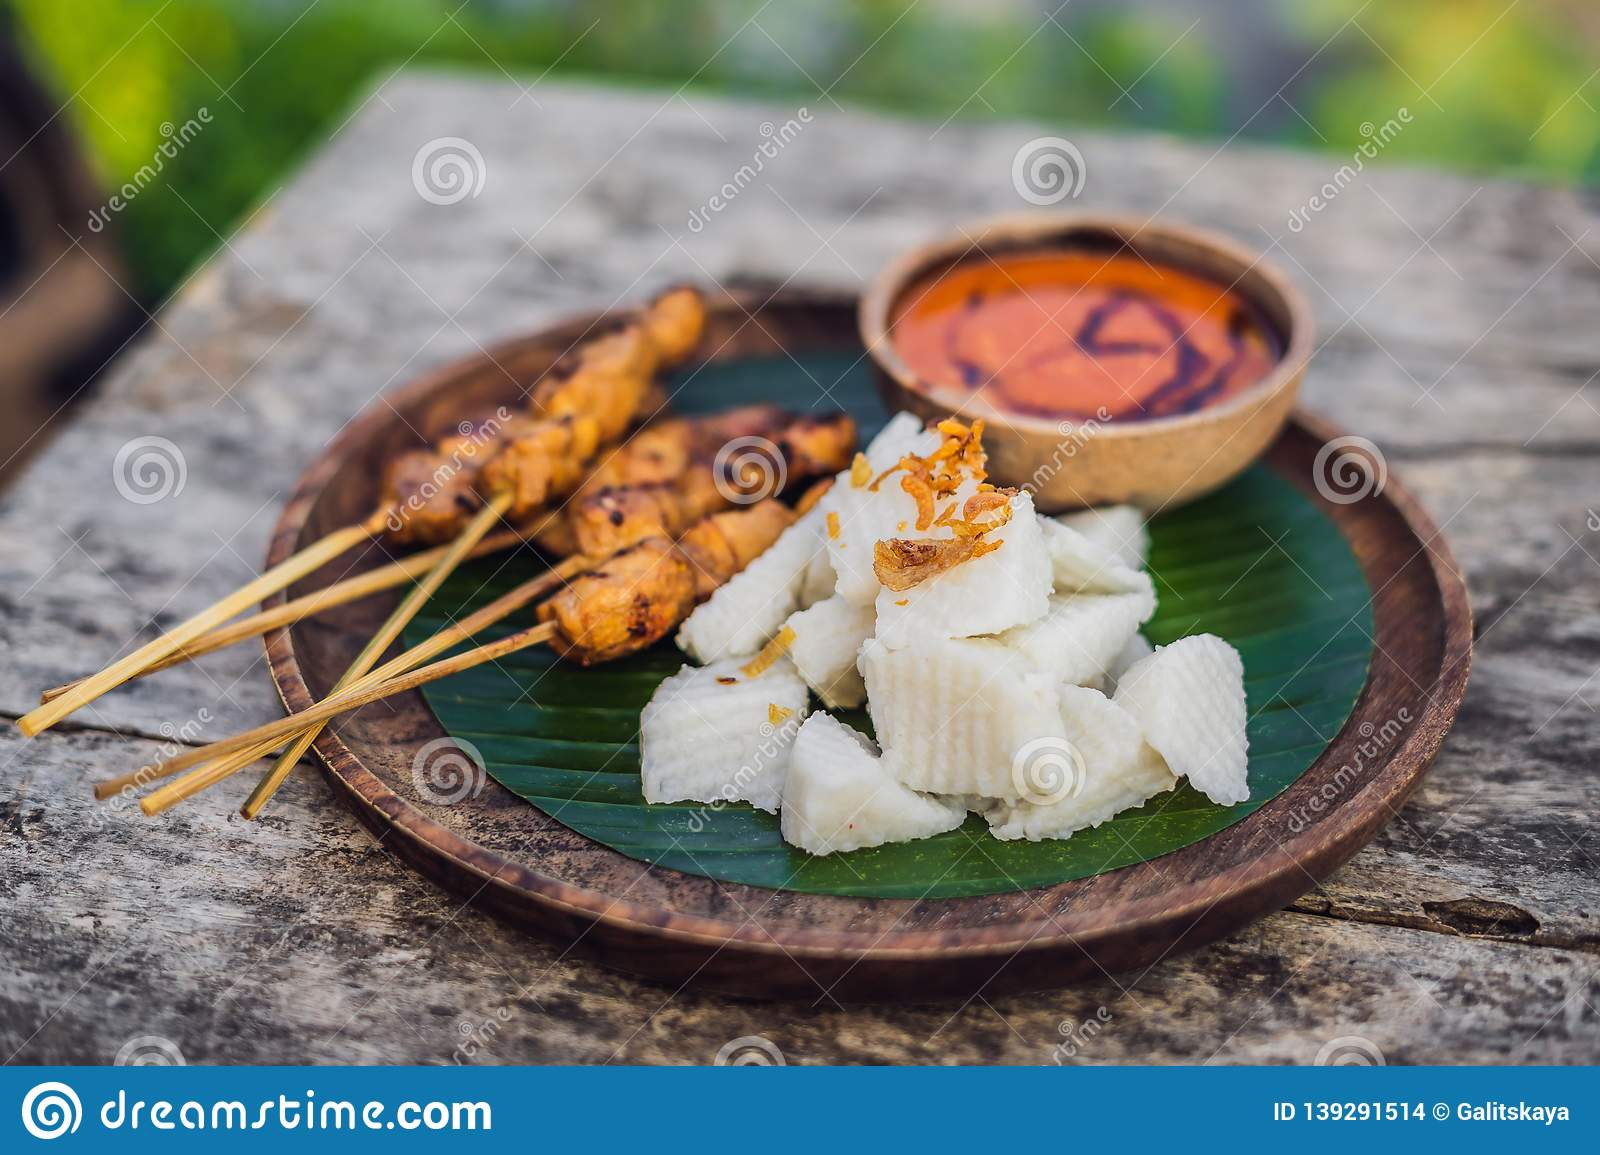 Indonesian Chicken Satay Or Sate Ayam Served With Lontong Soy Sauce And Peanut Sauce Lifestyle Food Stock Photo Image Of Celebrations Grilled 139291514